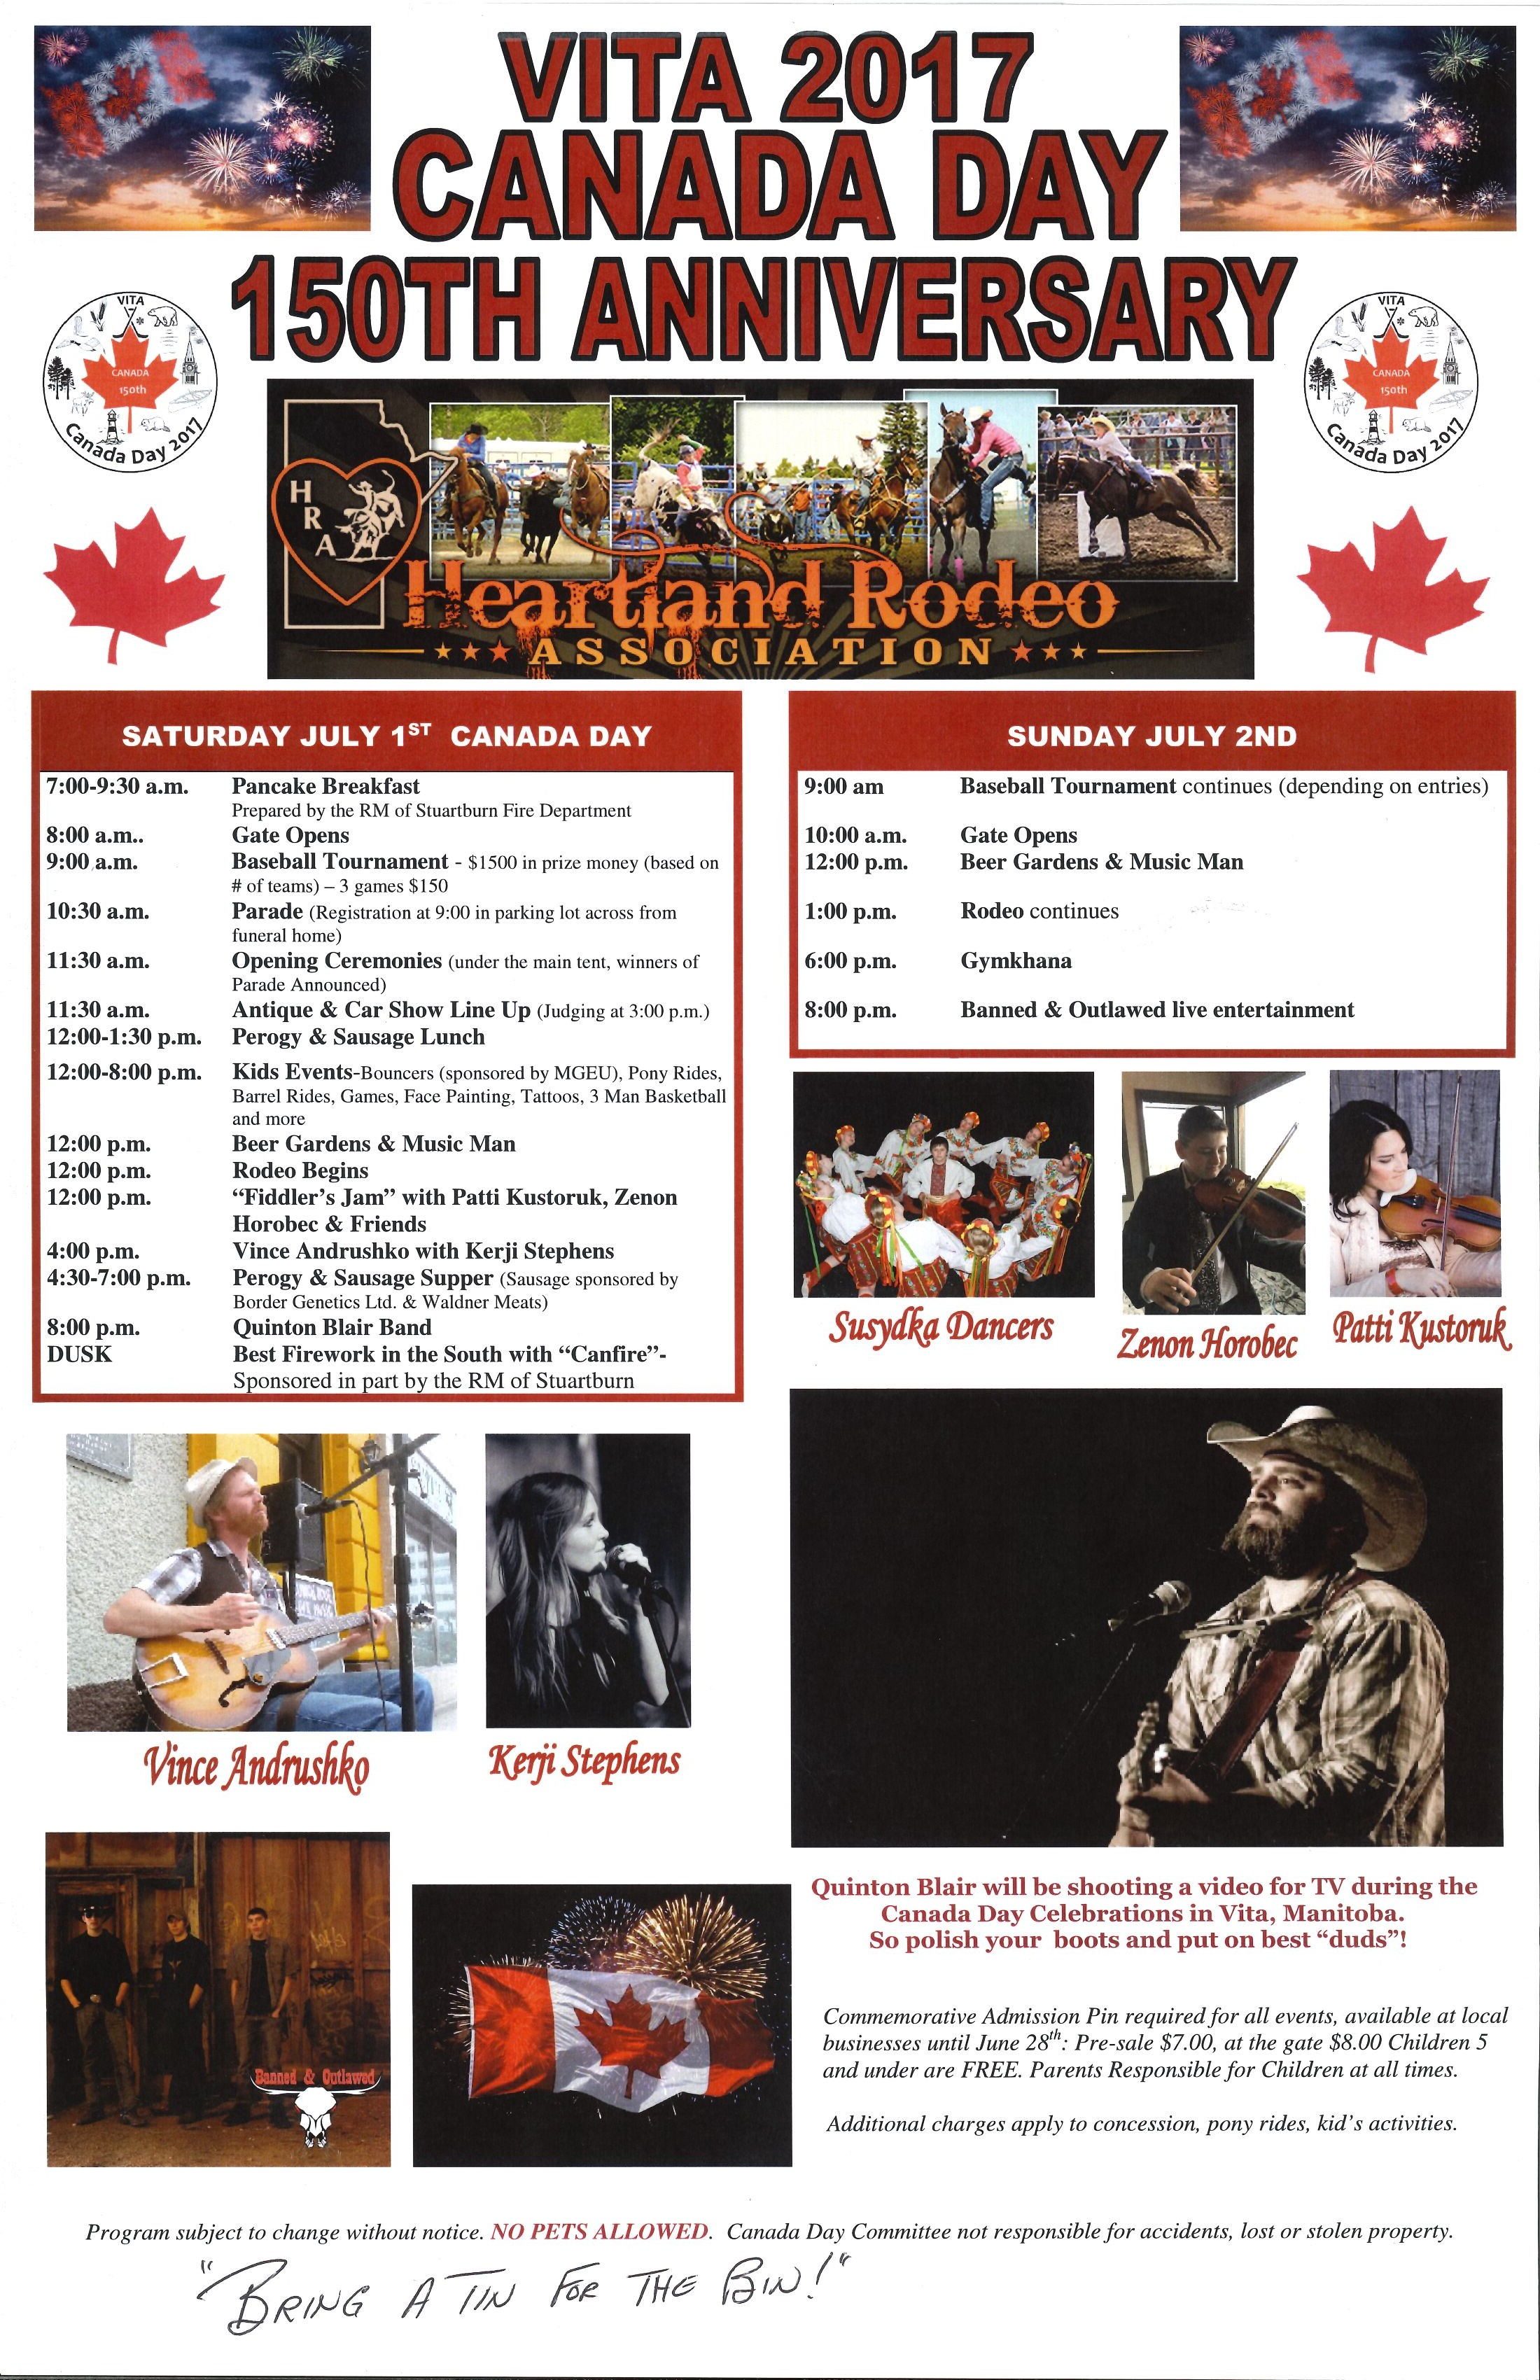 Vita, Canada Day, Rodeo, Family, Music, Children, Baseball